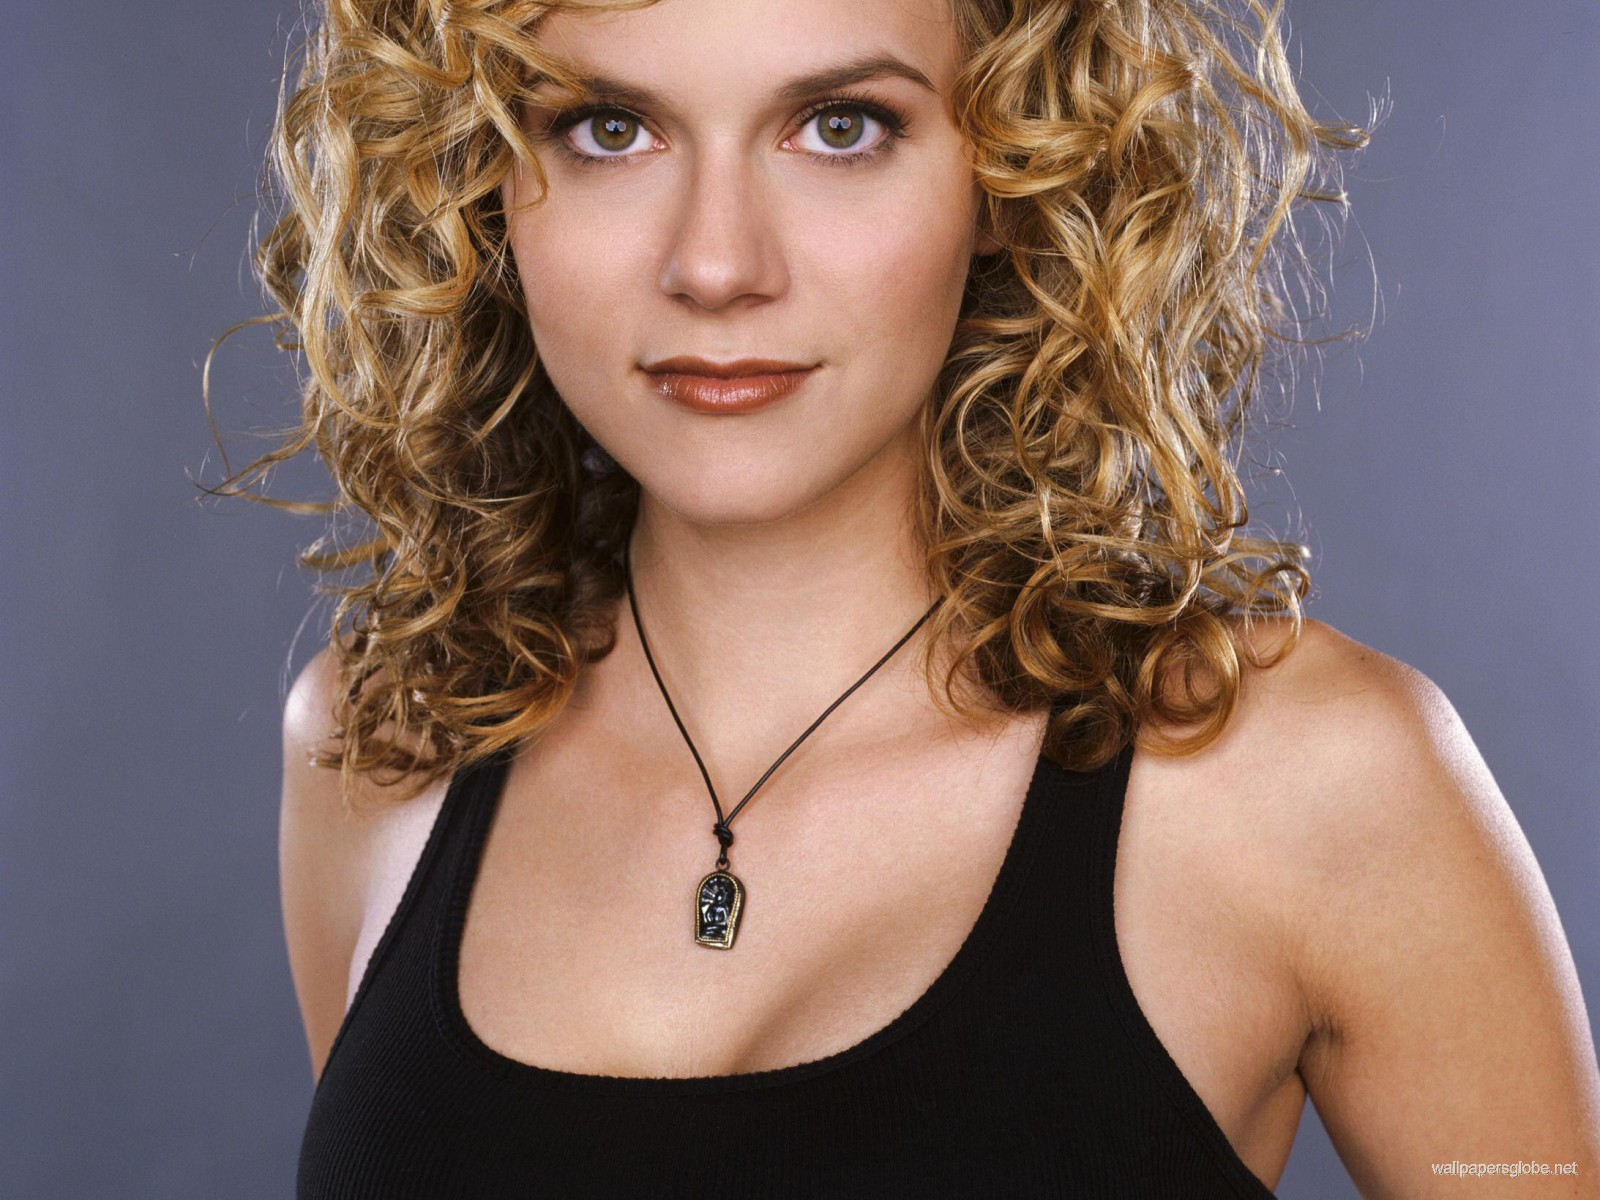 Hilarie Burton Wallpapers, Pictures, Images Hilarie Burton